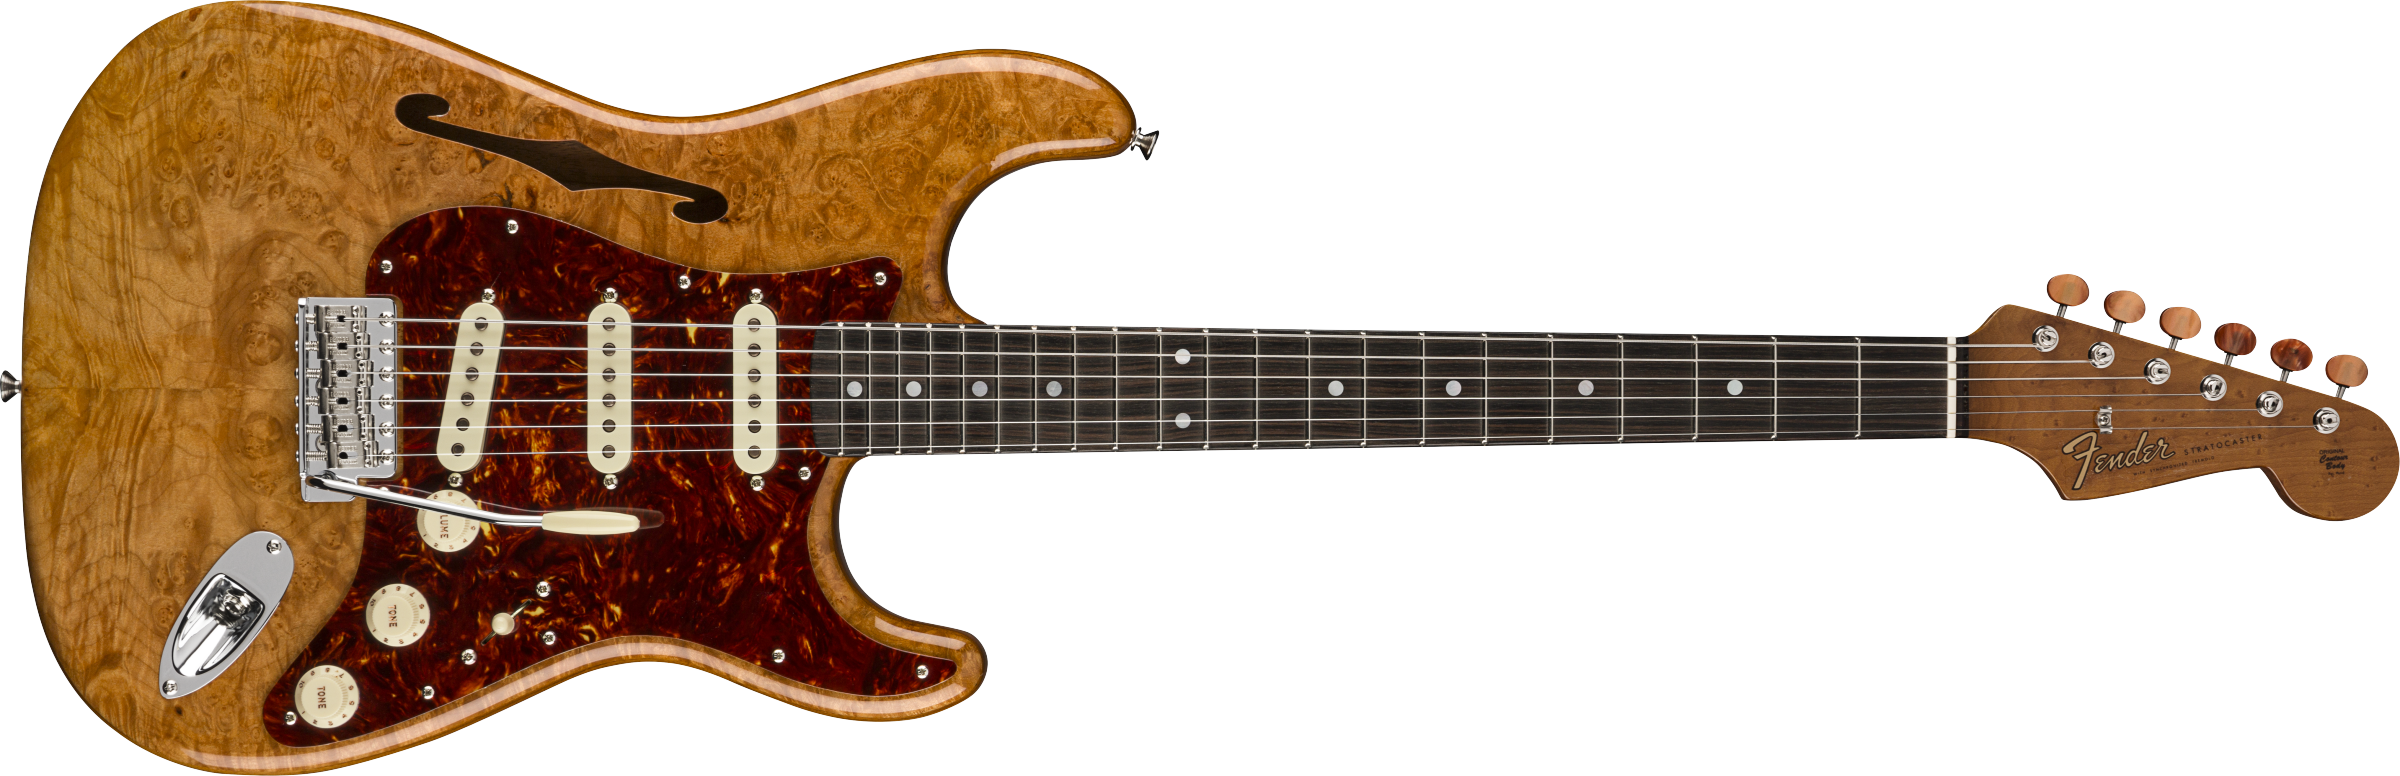 FENDER-Artisan-Maple-Burl-Stratocaster-Thinline-Roasted-Ash-Body-with-AAAA-Figured-Maple-Burl-Top-Ebony-Fingerboard-Aged-Natural-sku-571005171